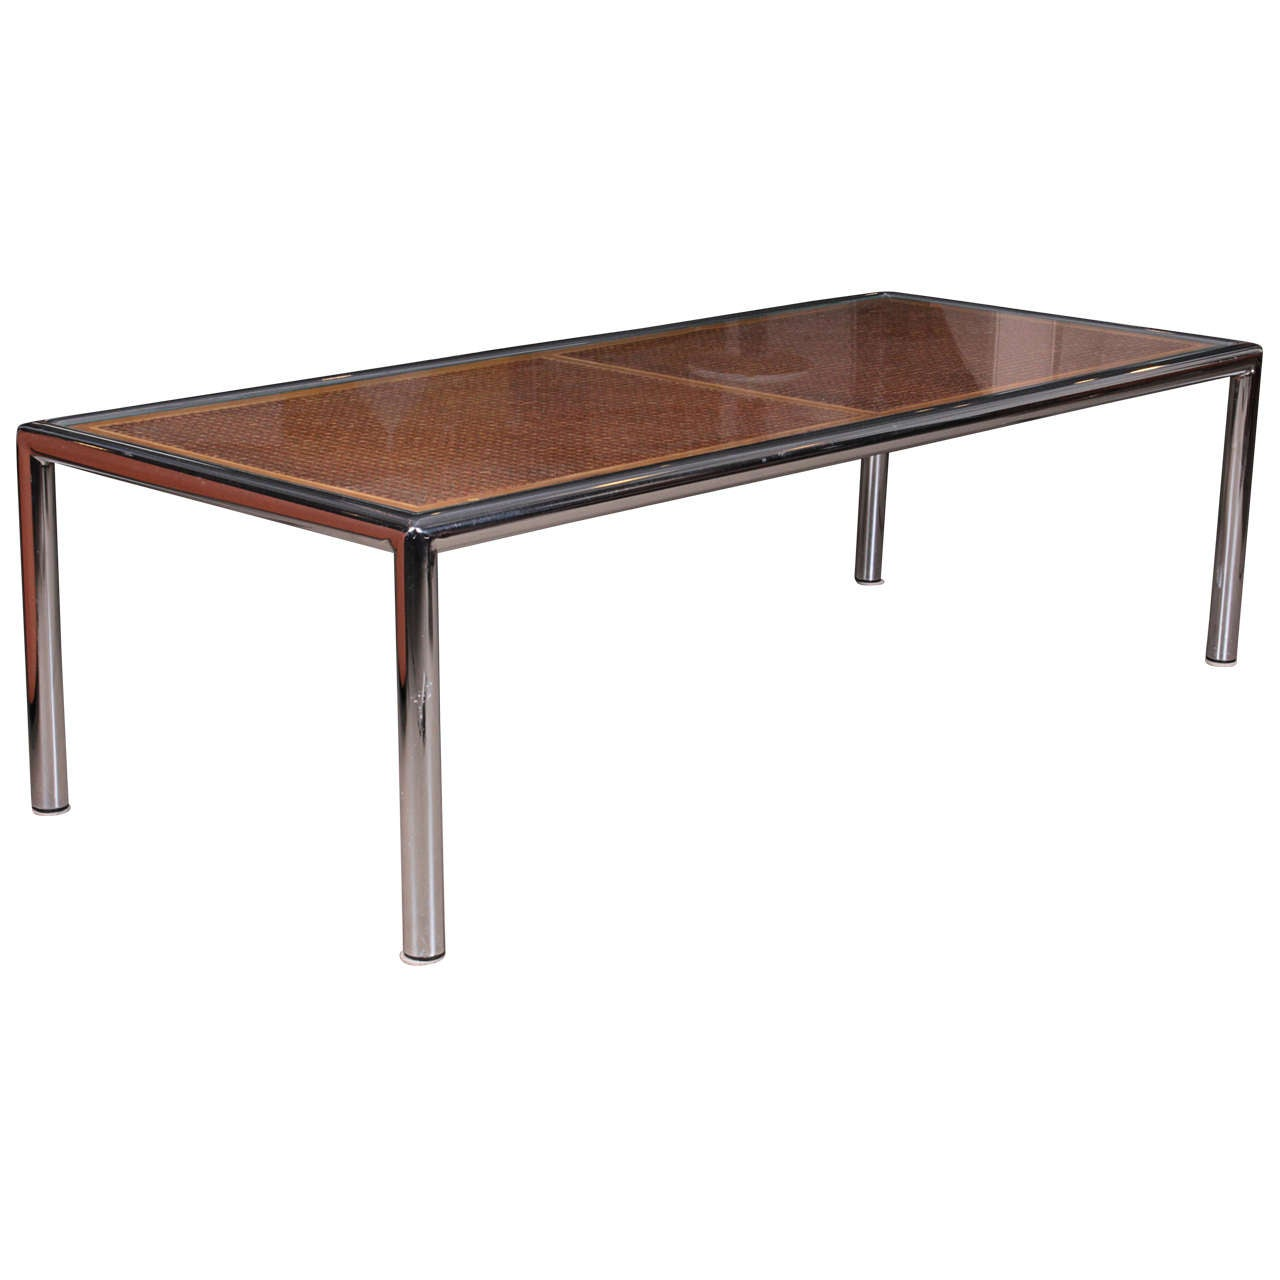 1970s Chrome And Caned Coffee Table By Milo Baughman At 1stdibs